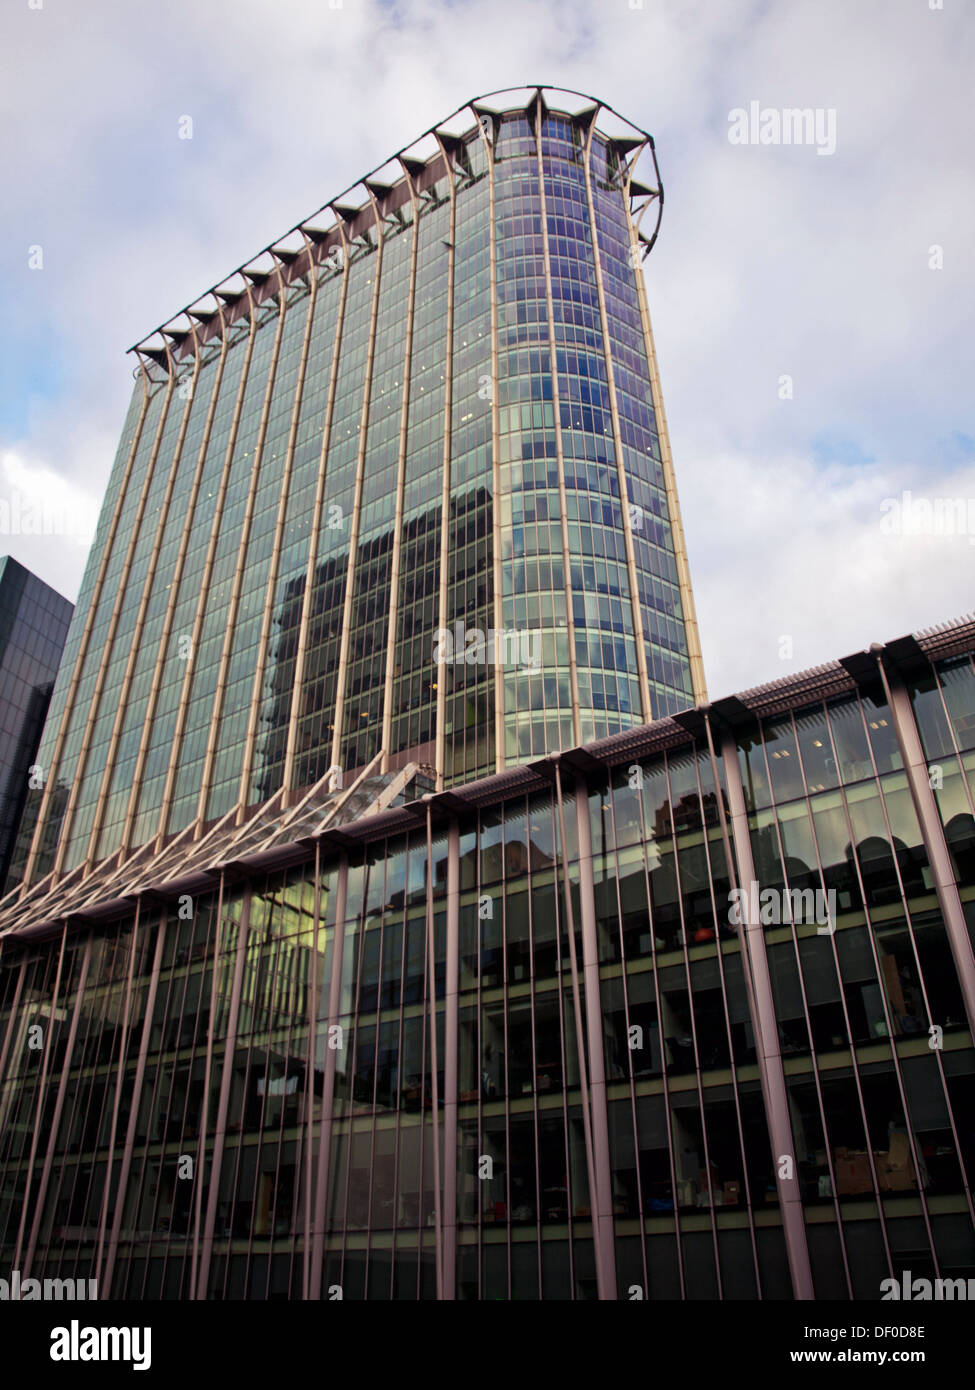 View of CityPoint, the fifth-tallest building in the City of London, London, England, United Kingdom - Stock Image